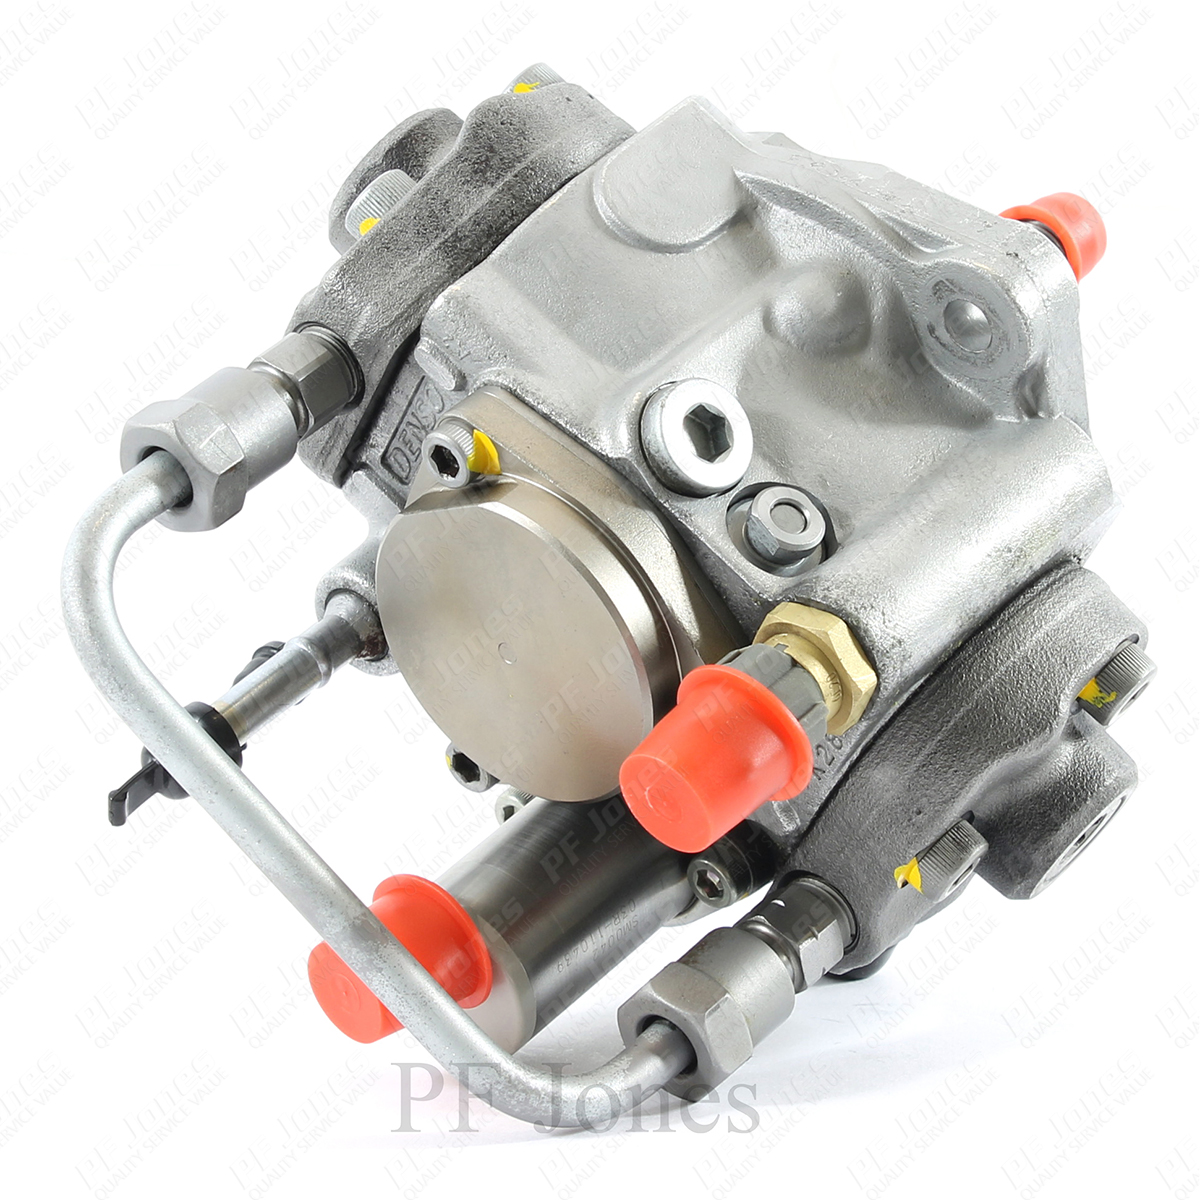 Toyota Avensis 2.0 2003 Onwards Reconditioned Denso Diesel Fuel Pump 294000-0850